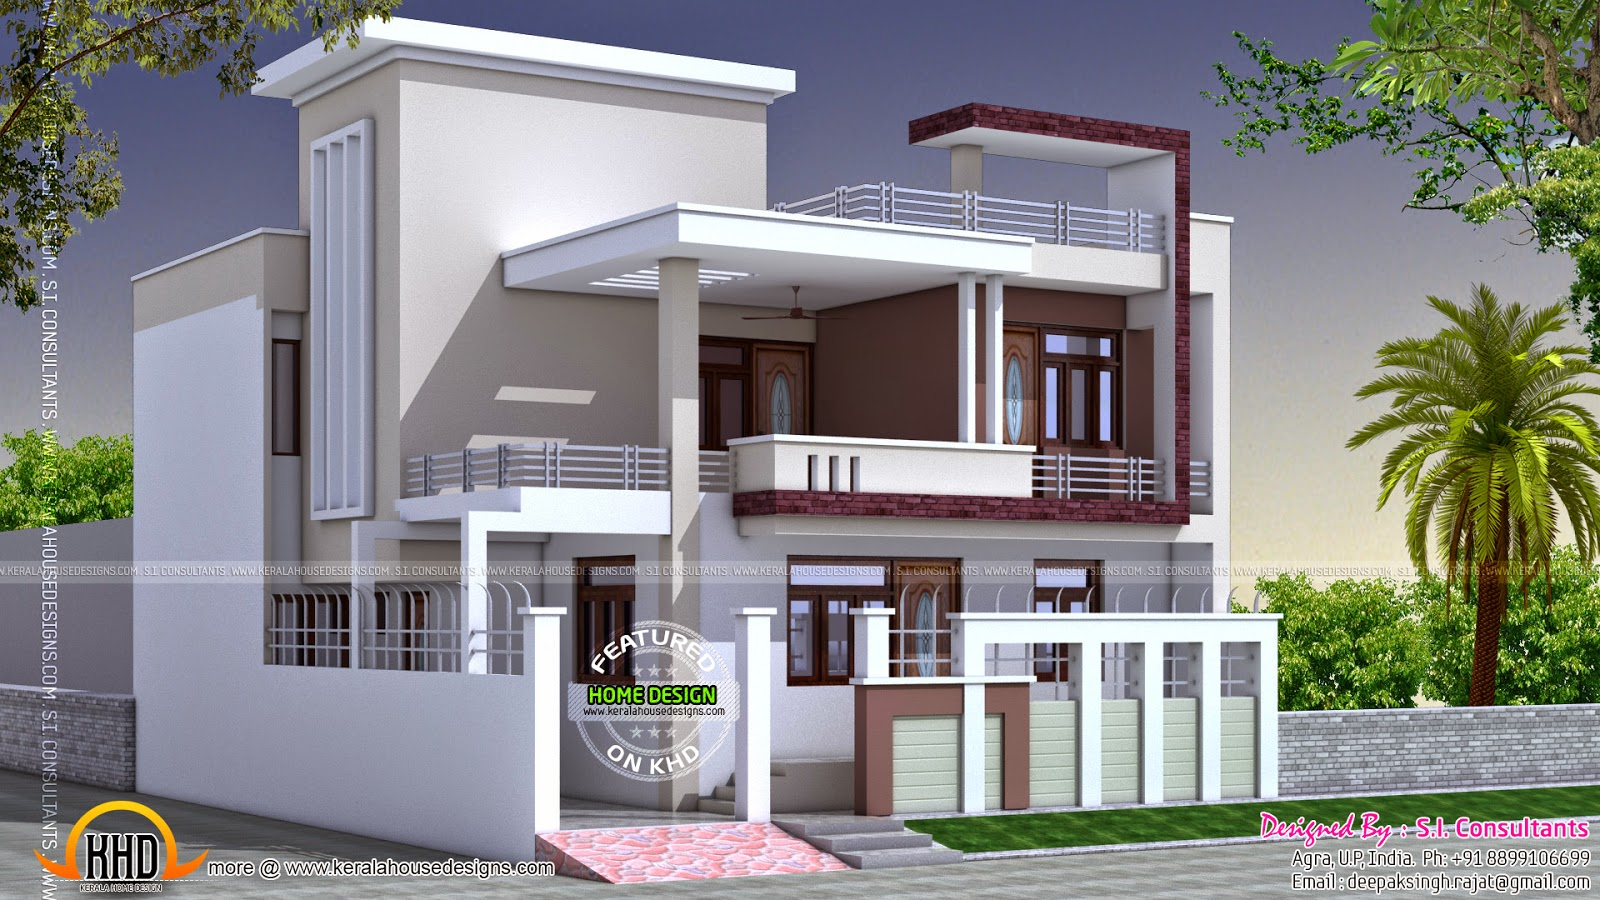 News And Article Online: North Indian Square Roof House